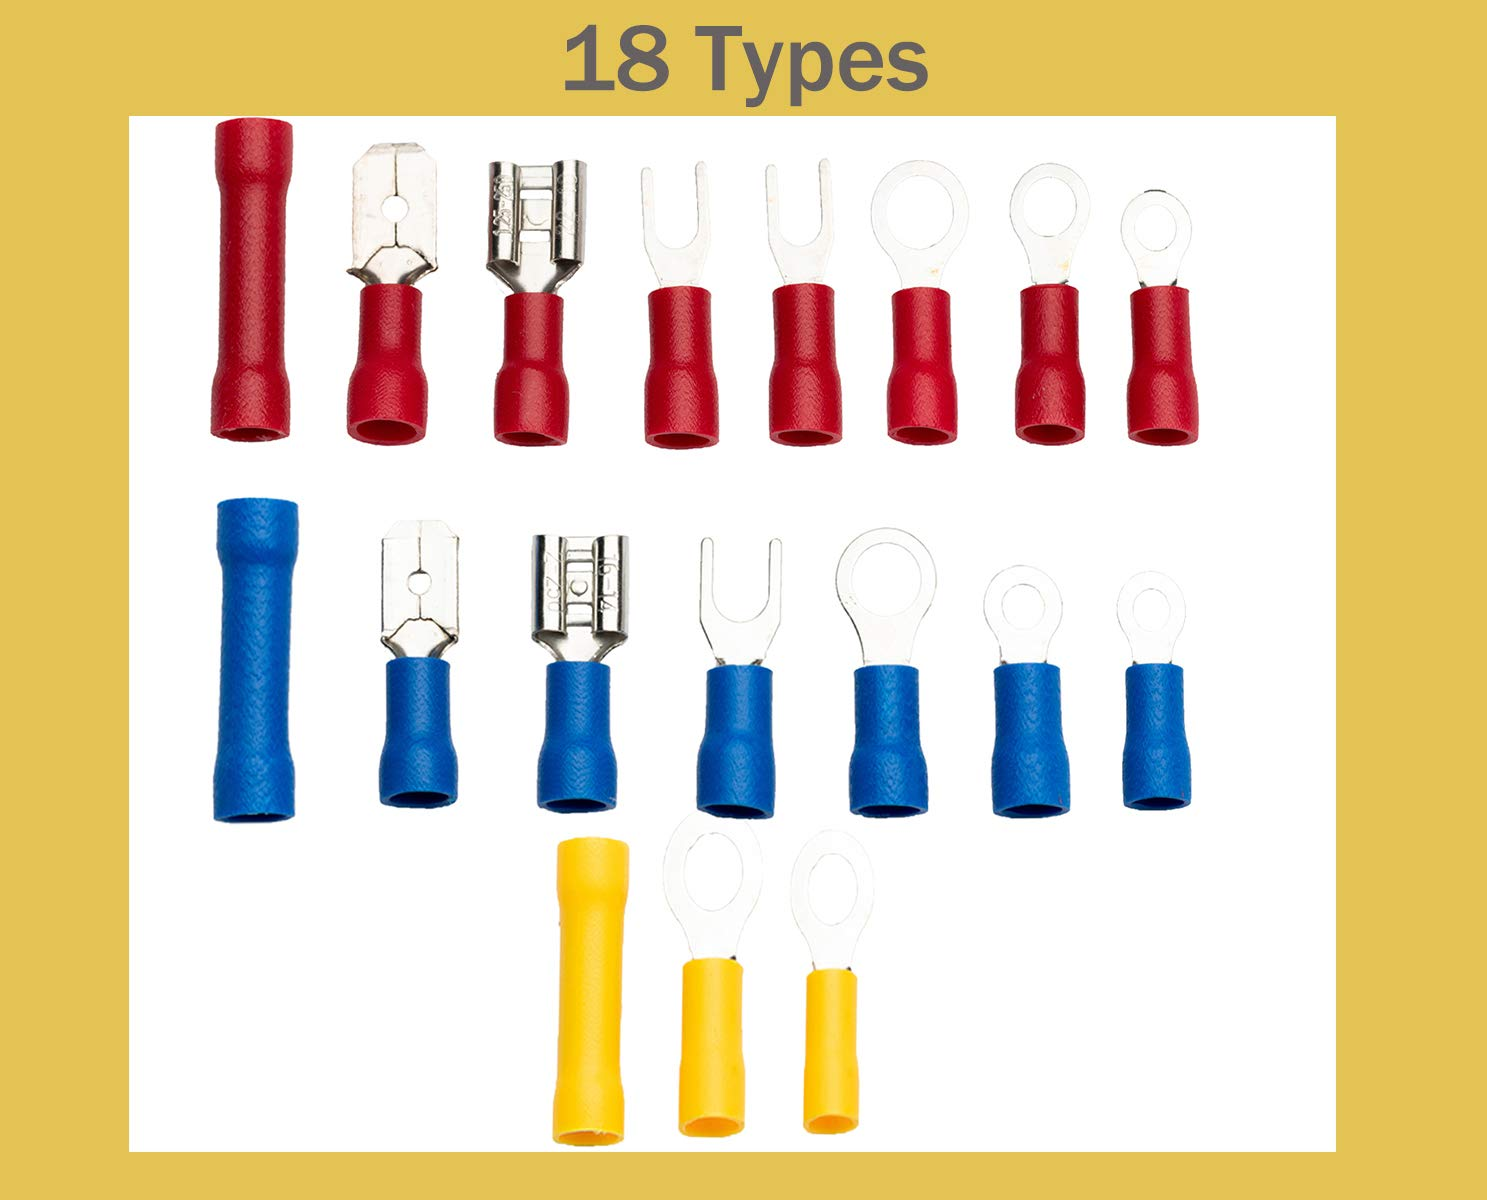 1200PCS Wire Connectors Insulated Electrical Wire Terminals Elibbren Insulated Wiring Terminals Crimp Connector Terminal Assortment Kit for Automotive by Elibbren (Image #5)